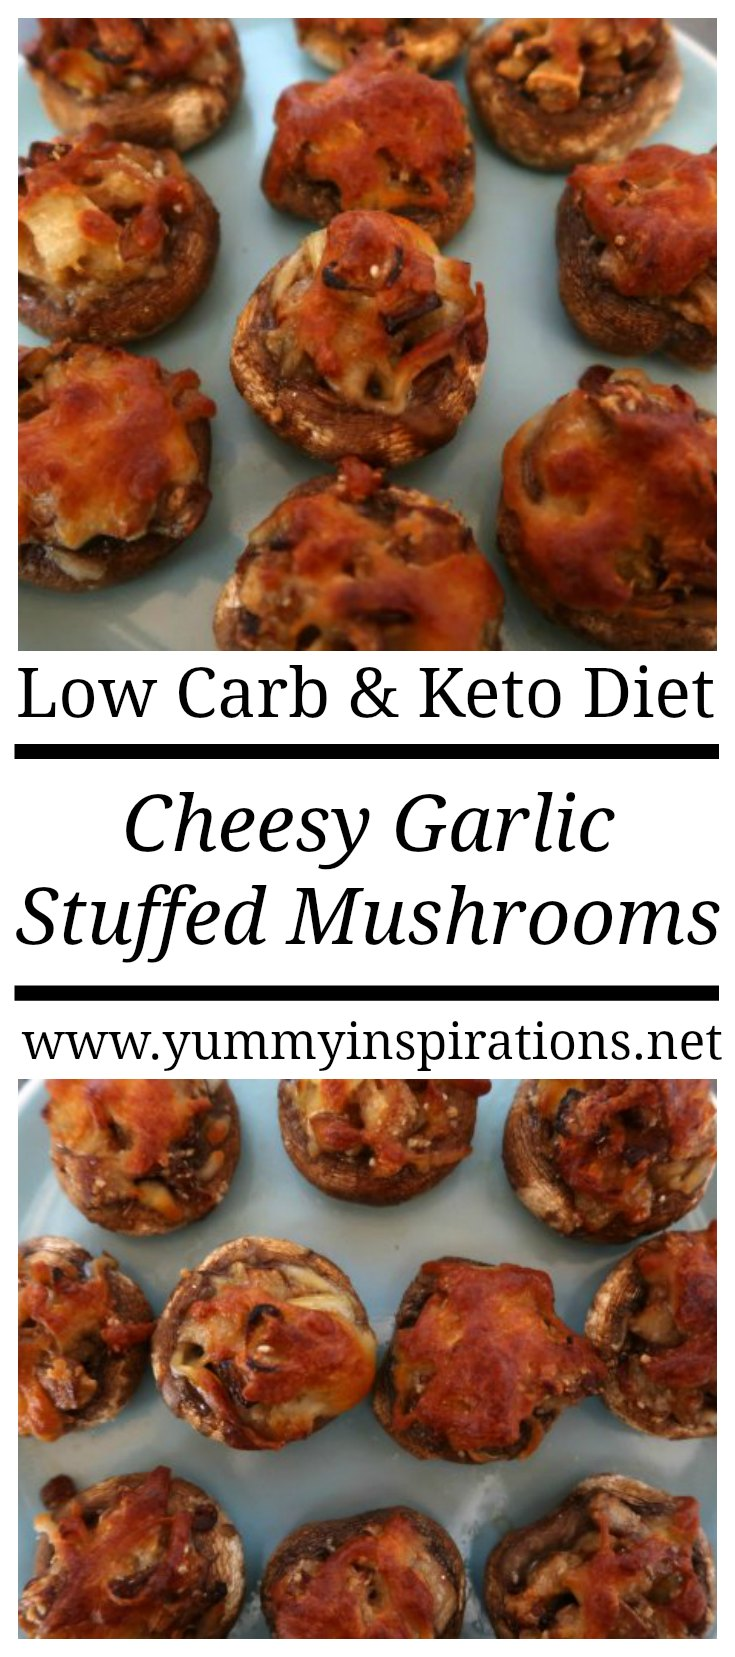 Cheesy Garlic Vegetarian Stuffed Mushrooms Recipe - Easy Low Carb & Keto Friendly Dinner, Appetizer or Side Dish with ideas for healthy stuffing ingredients.